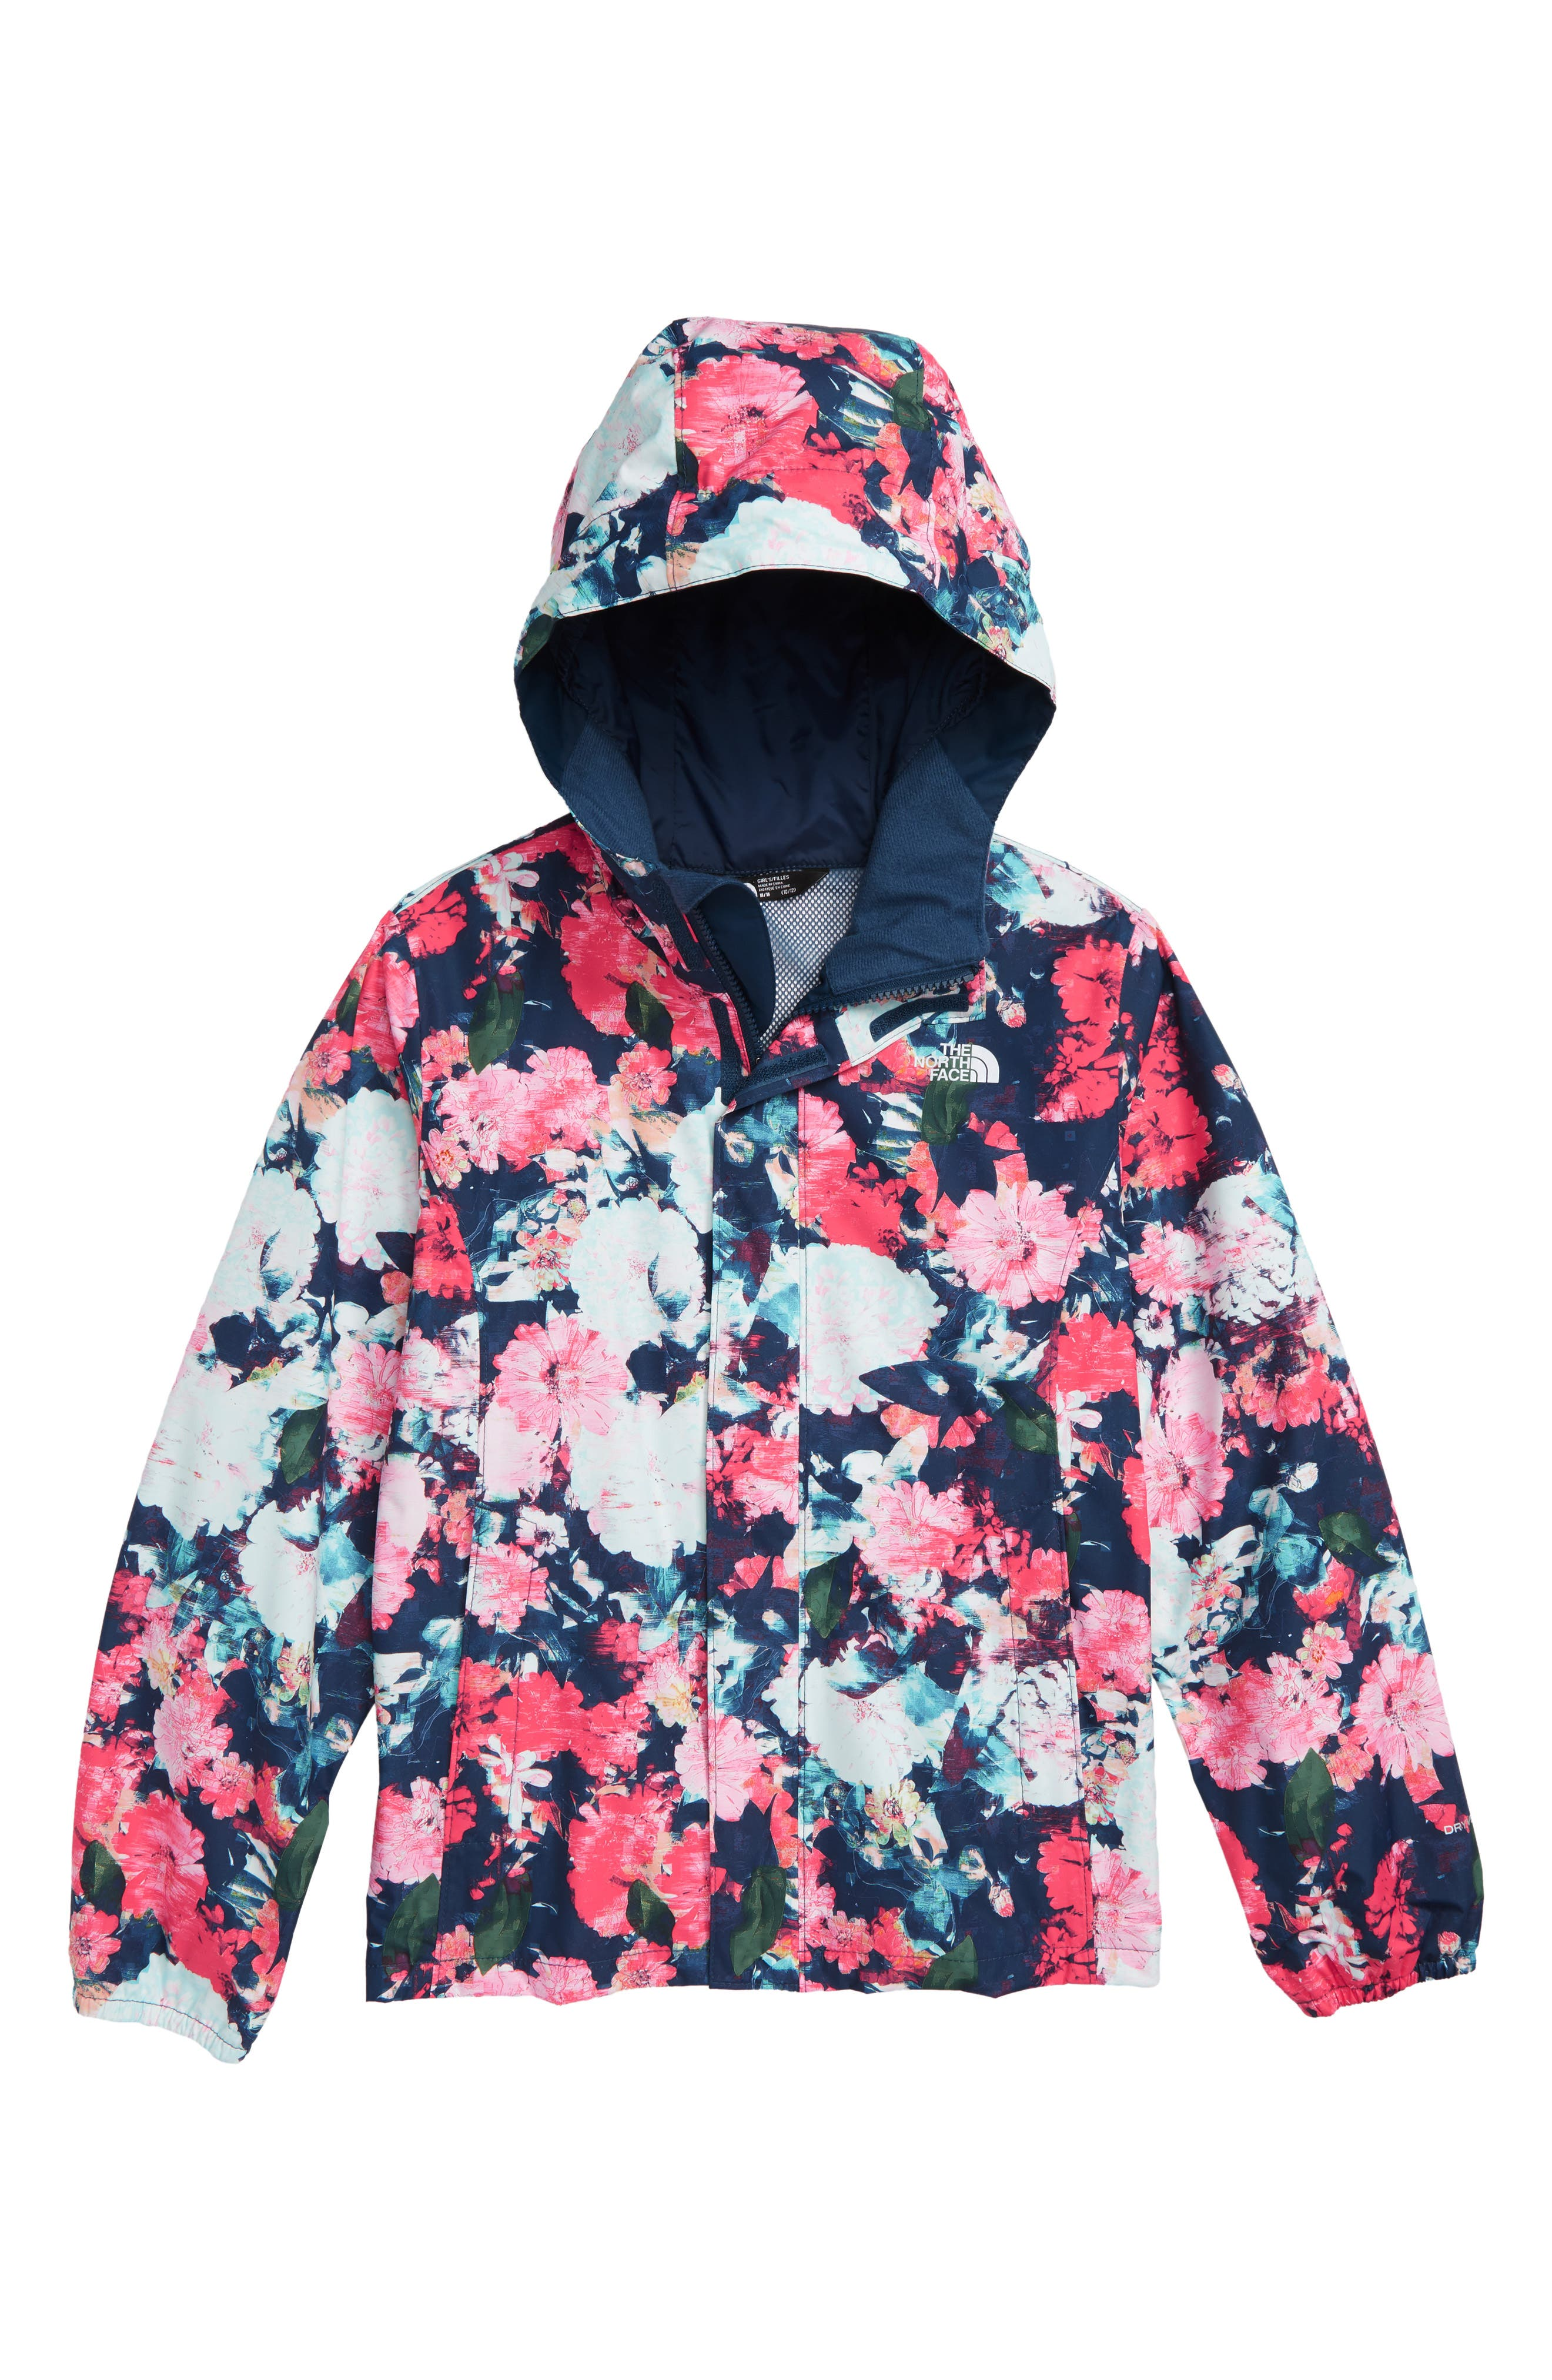 THE NORTH FACE, Resolve Reflective Waterproof Jacket, Main thumbnail 1, color, ATOMIC PINK DIGI FLORAL PRINT